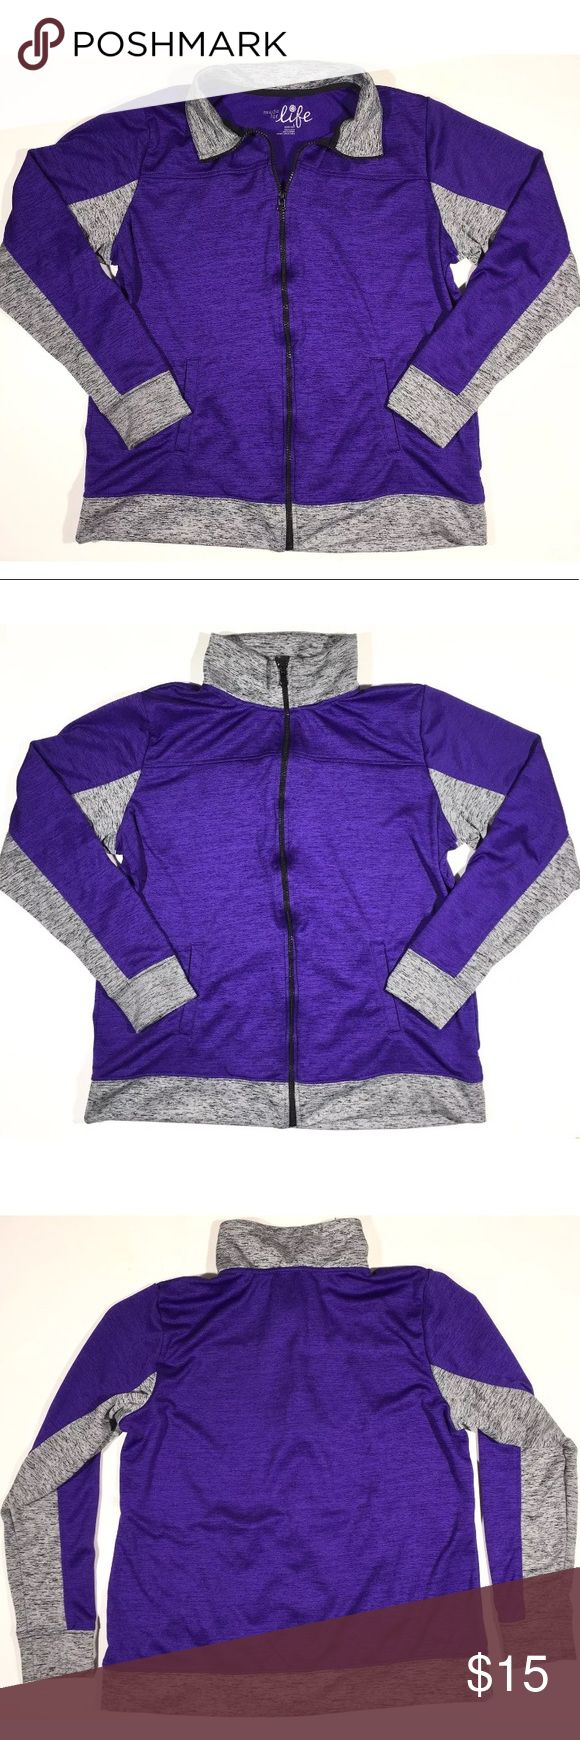 "Athletic Purple Zip up Quick Dri Yoga Jacket WOMENS  Made for Life JACKET  Size: L  Athletic Quick Dri Fabric  Zip up Jacket Heathered Purple & Gray with black zipper Excellent used condition!   Chest: 21 1/2"" Overall length (collar to hem): 25"" Armpit to cuff: 20"" Cuff width: 4"" Width at bottom: 21"" Made for Life Jackets & Coats"